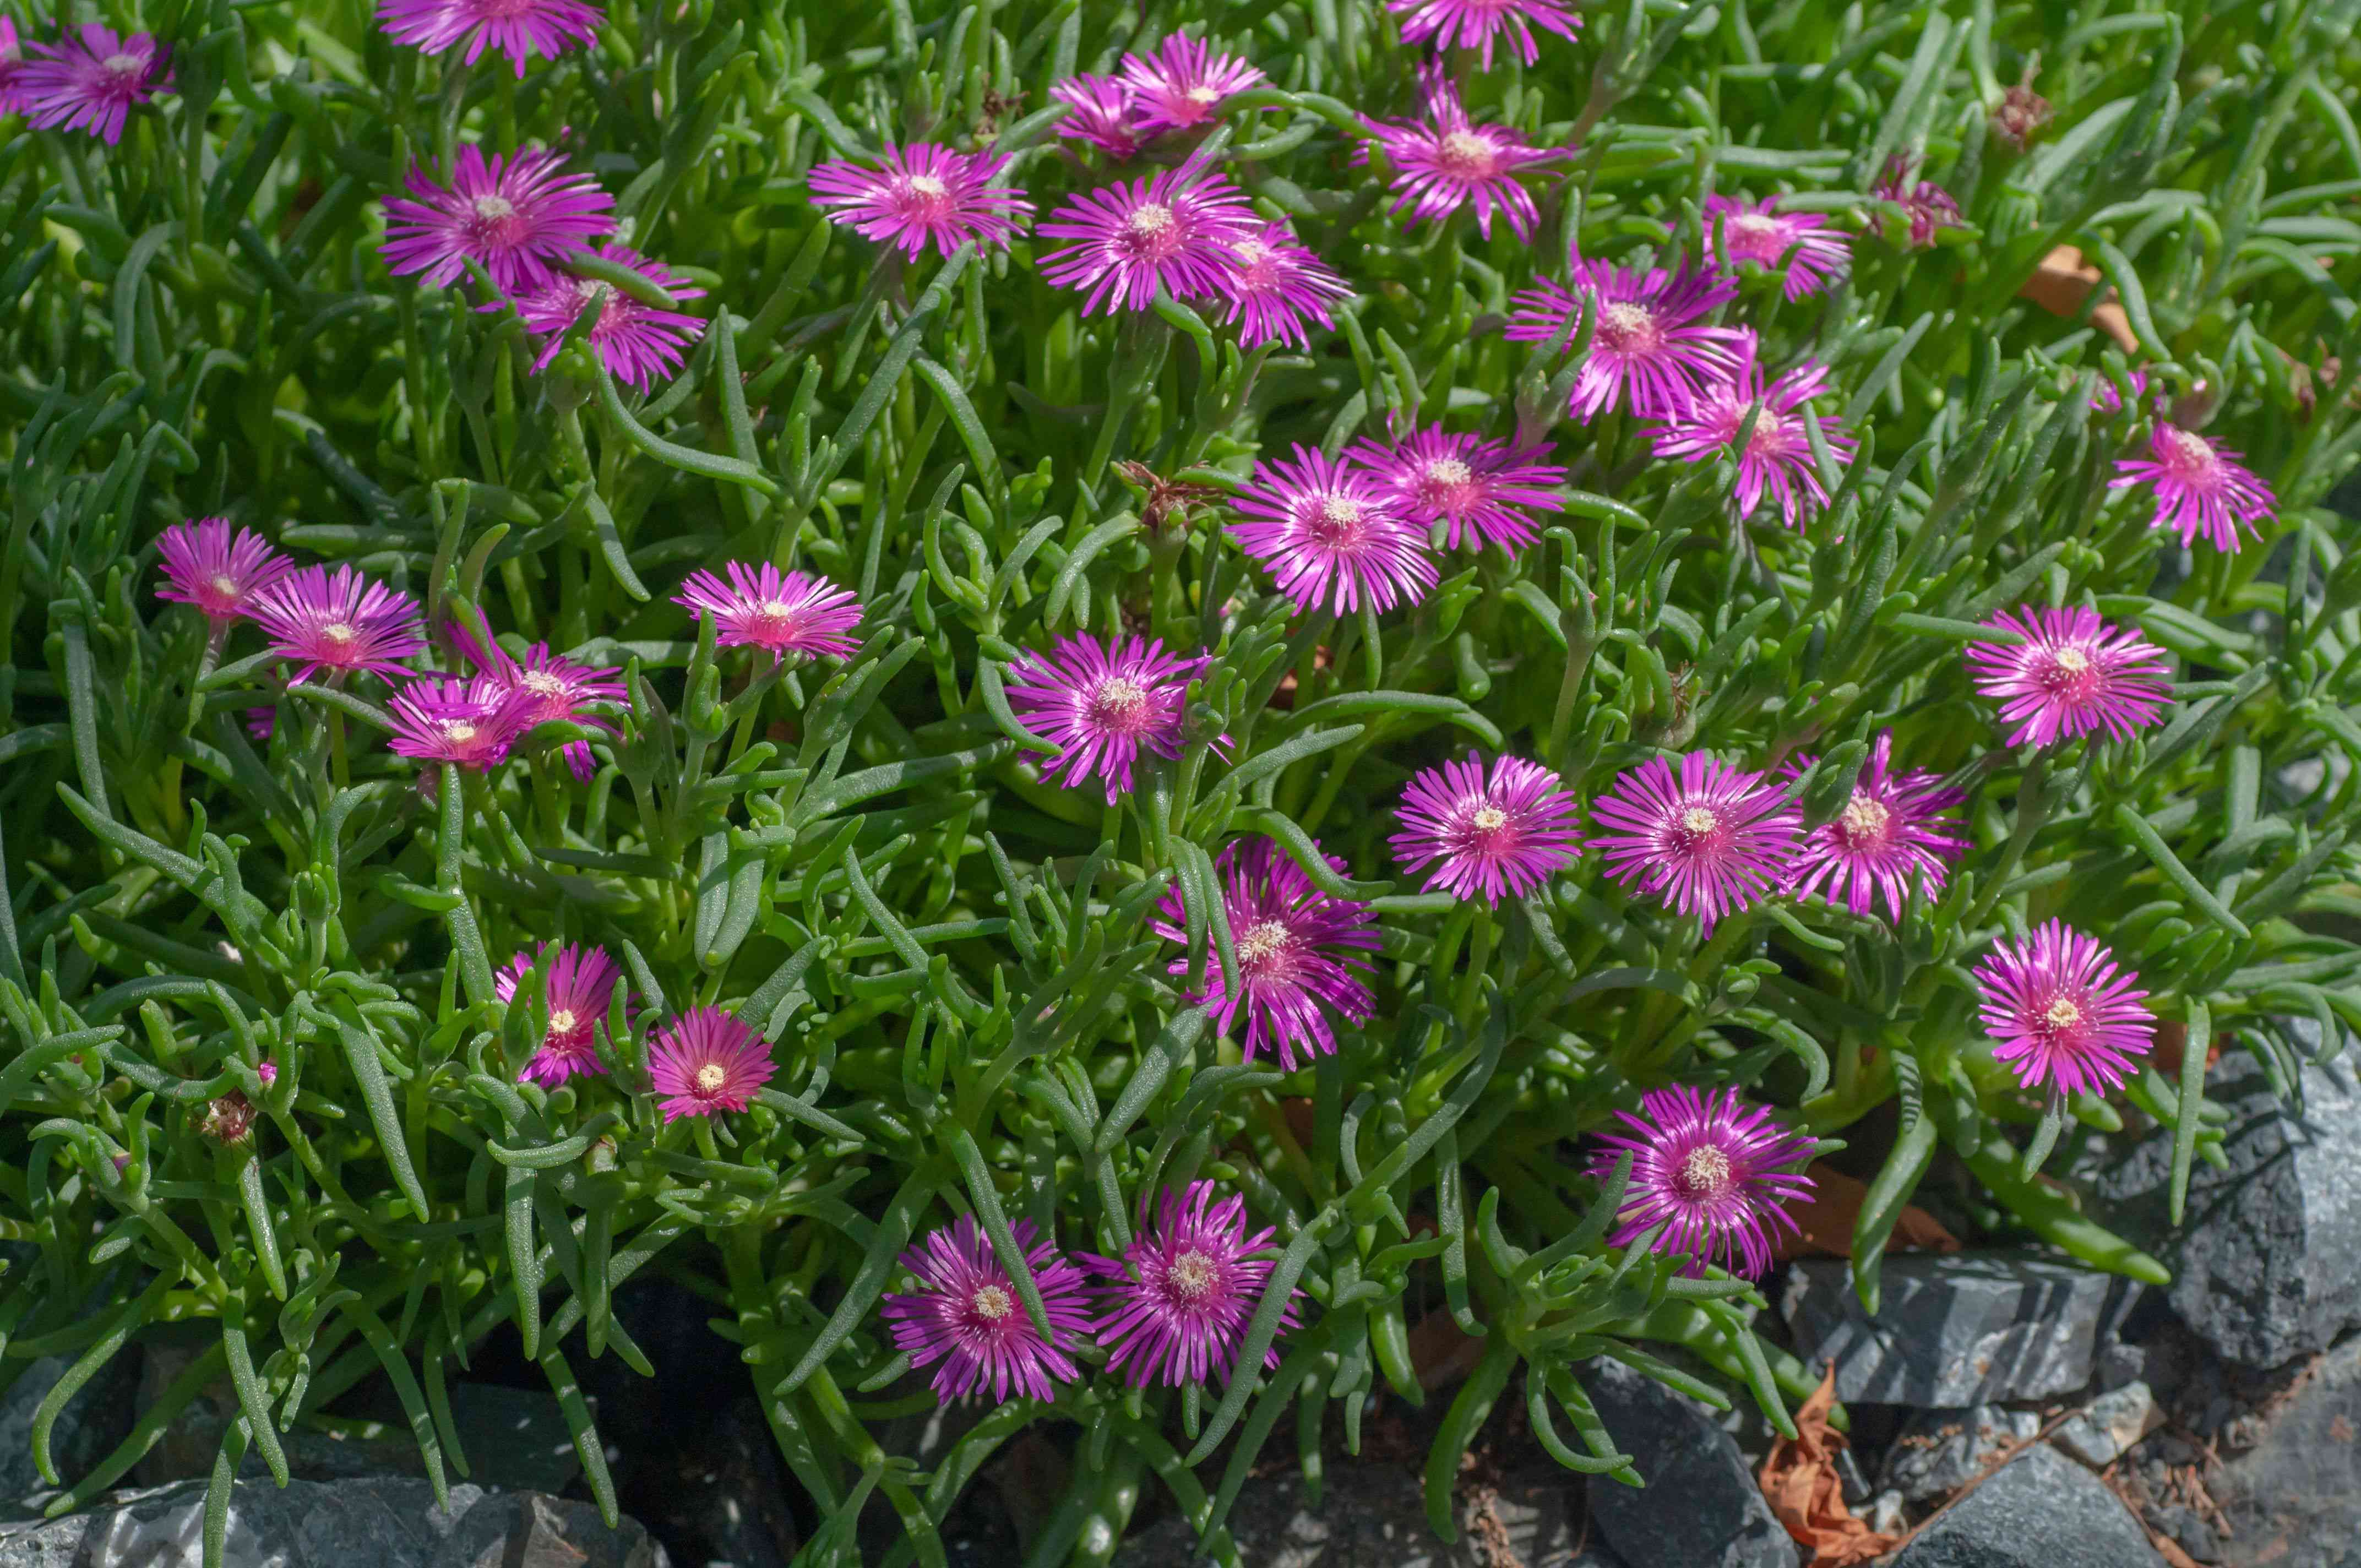 Ice plant with purple reflective flowers surrounded by tall thin leaves and rocks in sunlight